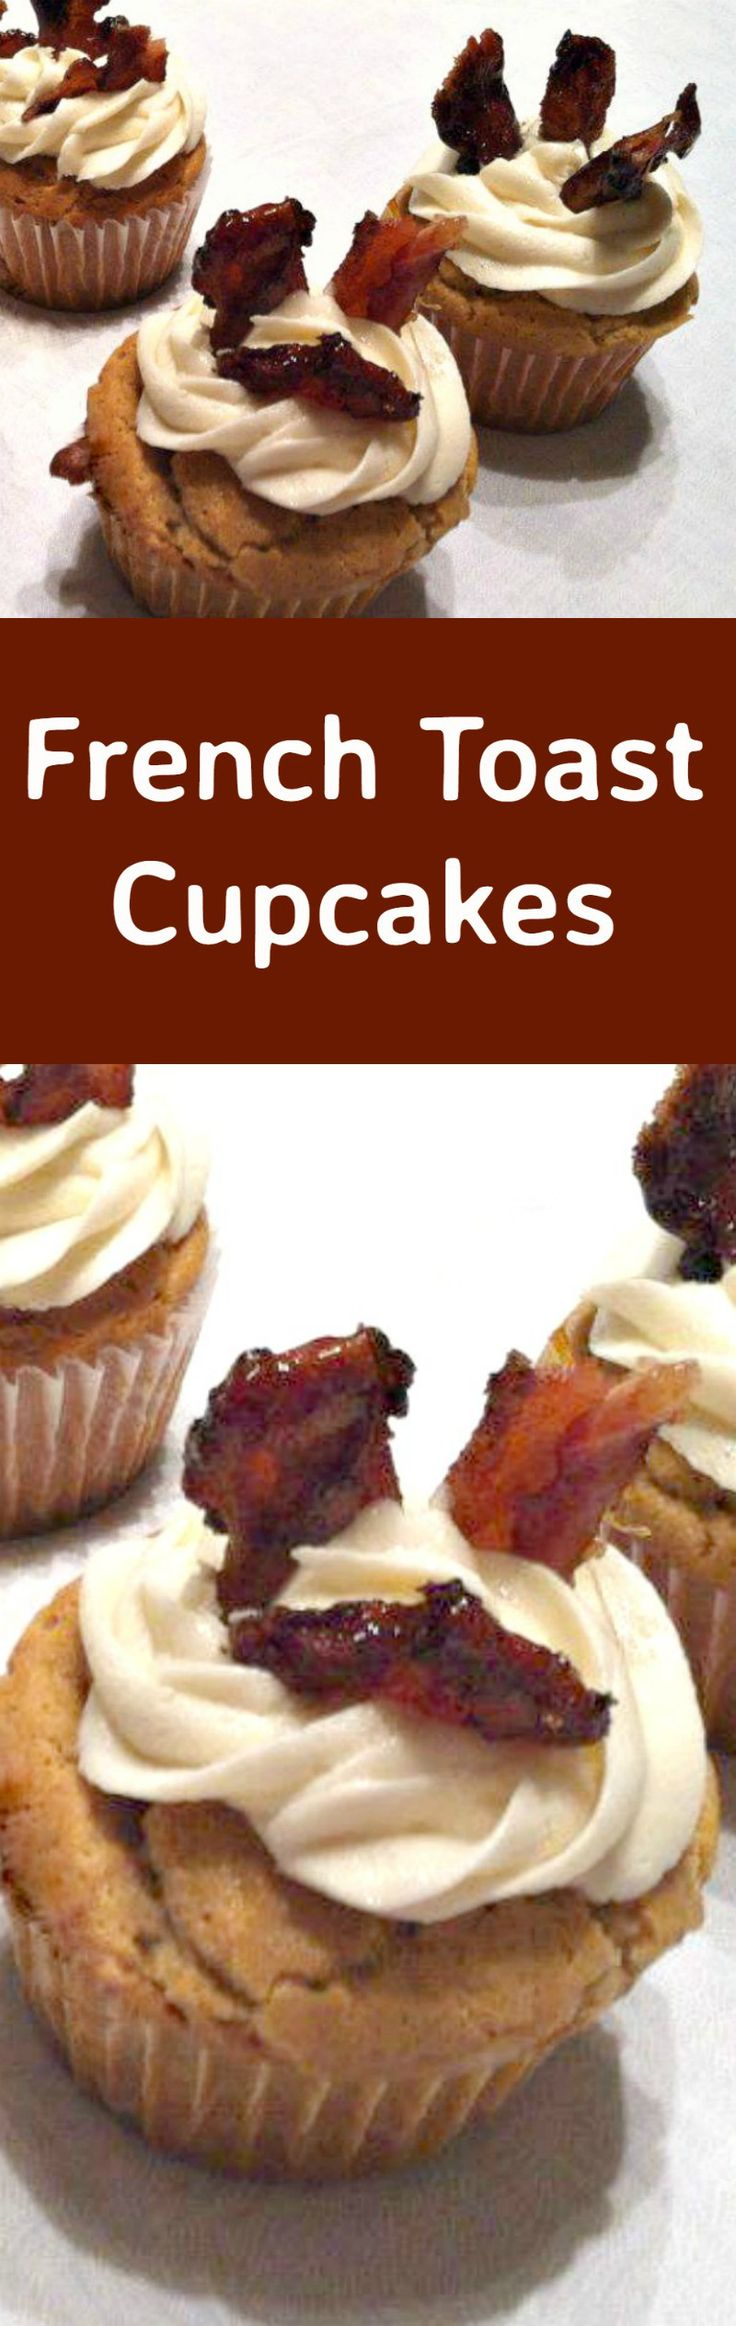 French Toast Cupcakes! These are wonderful soft and moist little cakes with a vanilla and maple flavor, frosted with maple cream and then topped off with some candied bacon. A super easy recipe and always so popular as a breakfast, dessert or for parties! | Lovefoodies.com